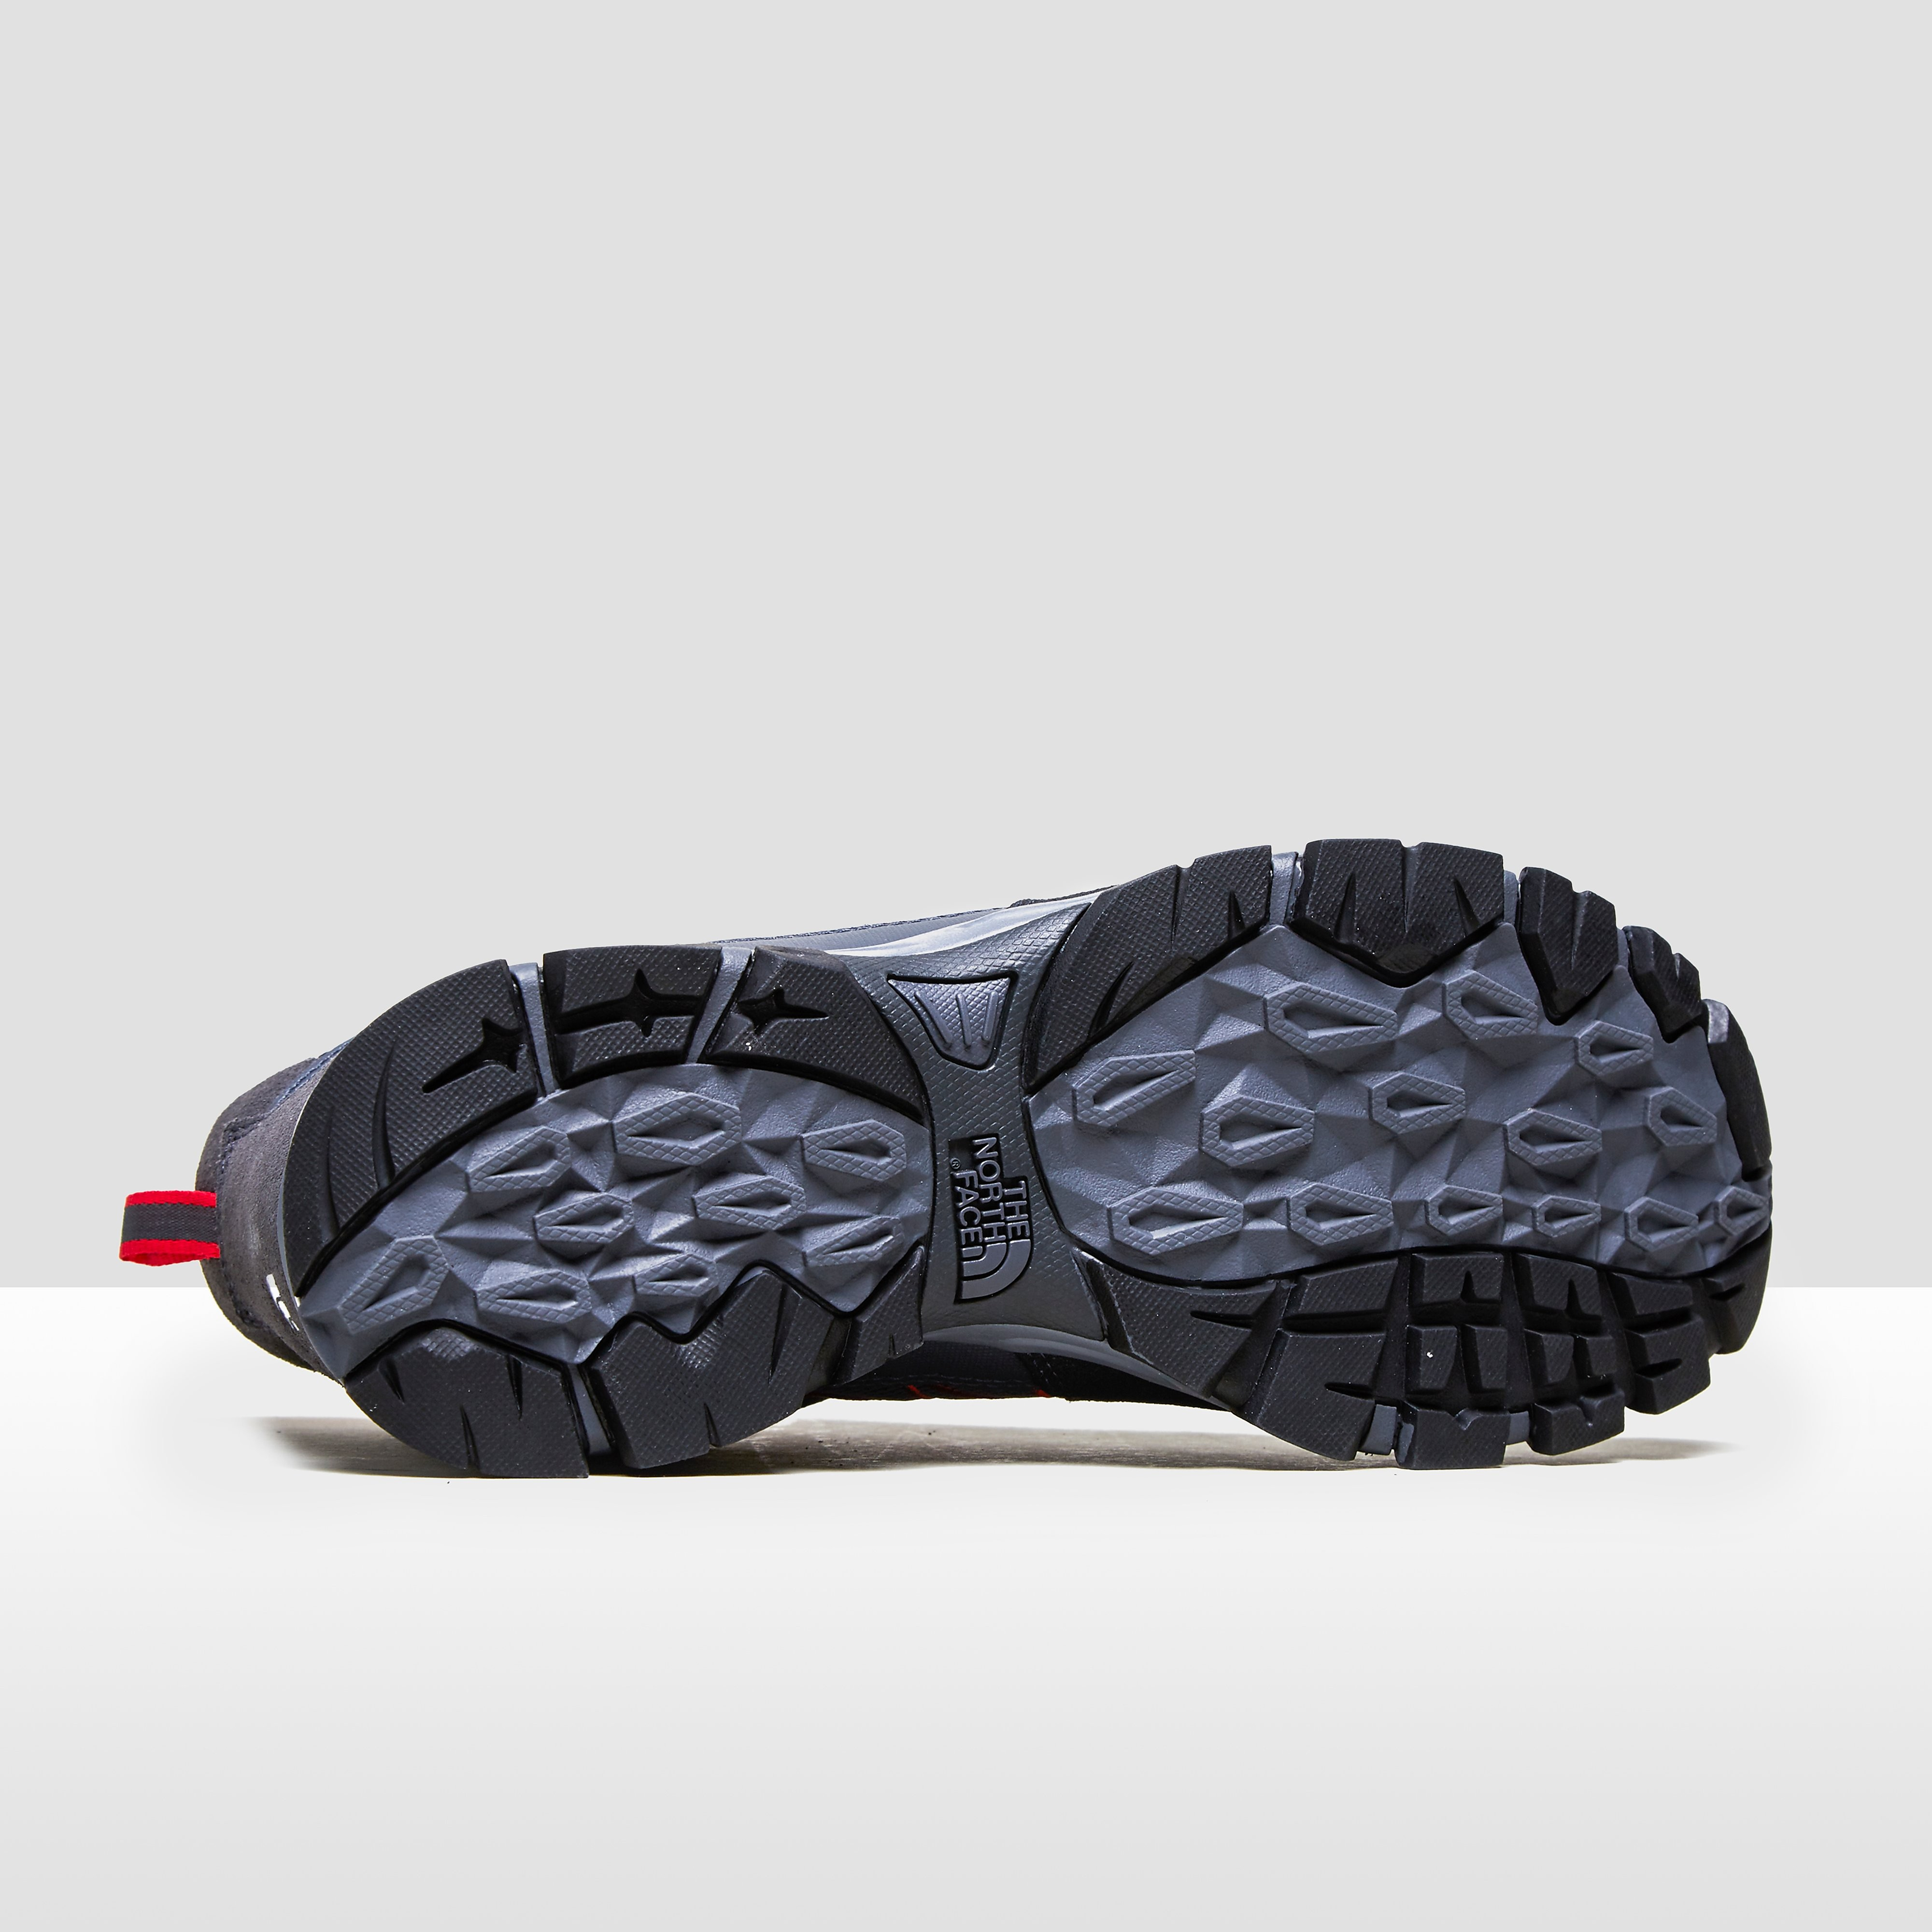 The North Face Tempest Mid GTX Men's Hiking Boots